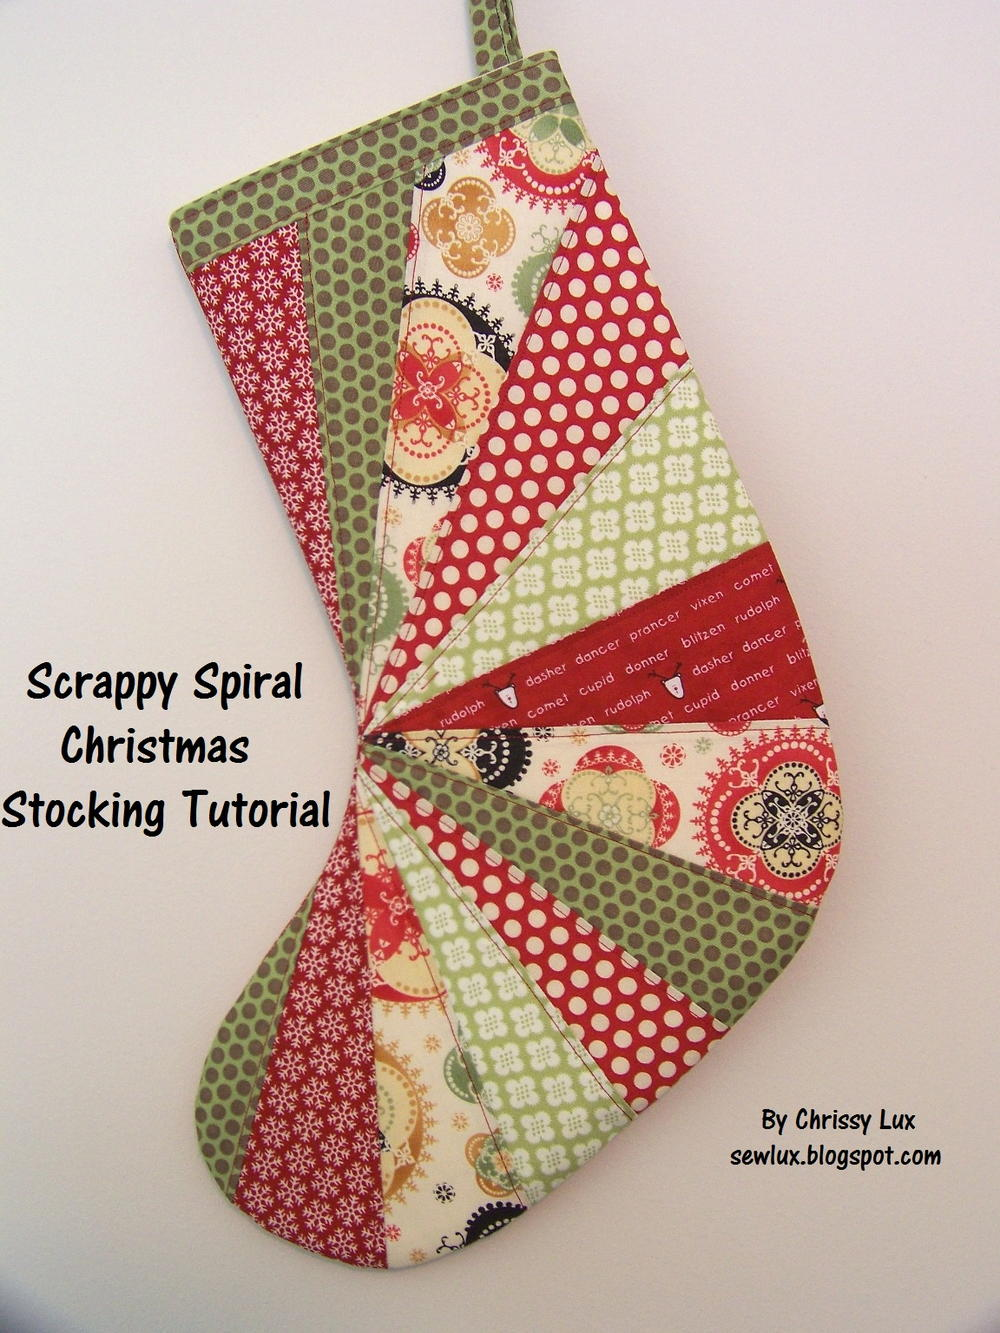 Scrappy Spiral Christmas Stocking Favequilts Com